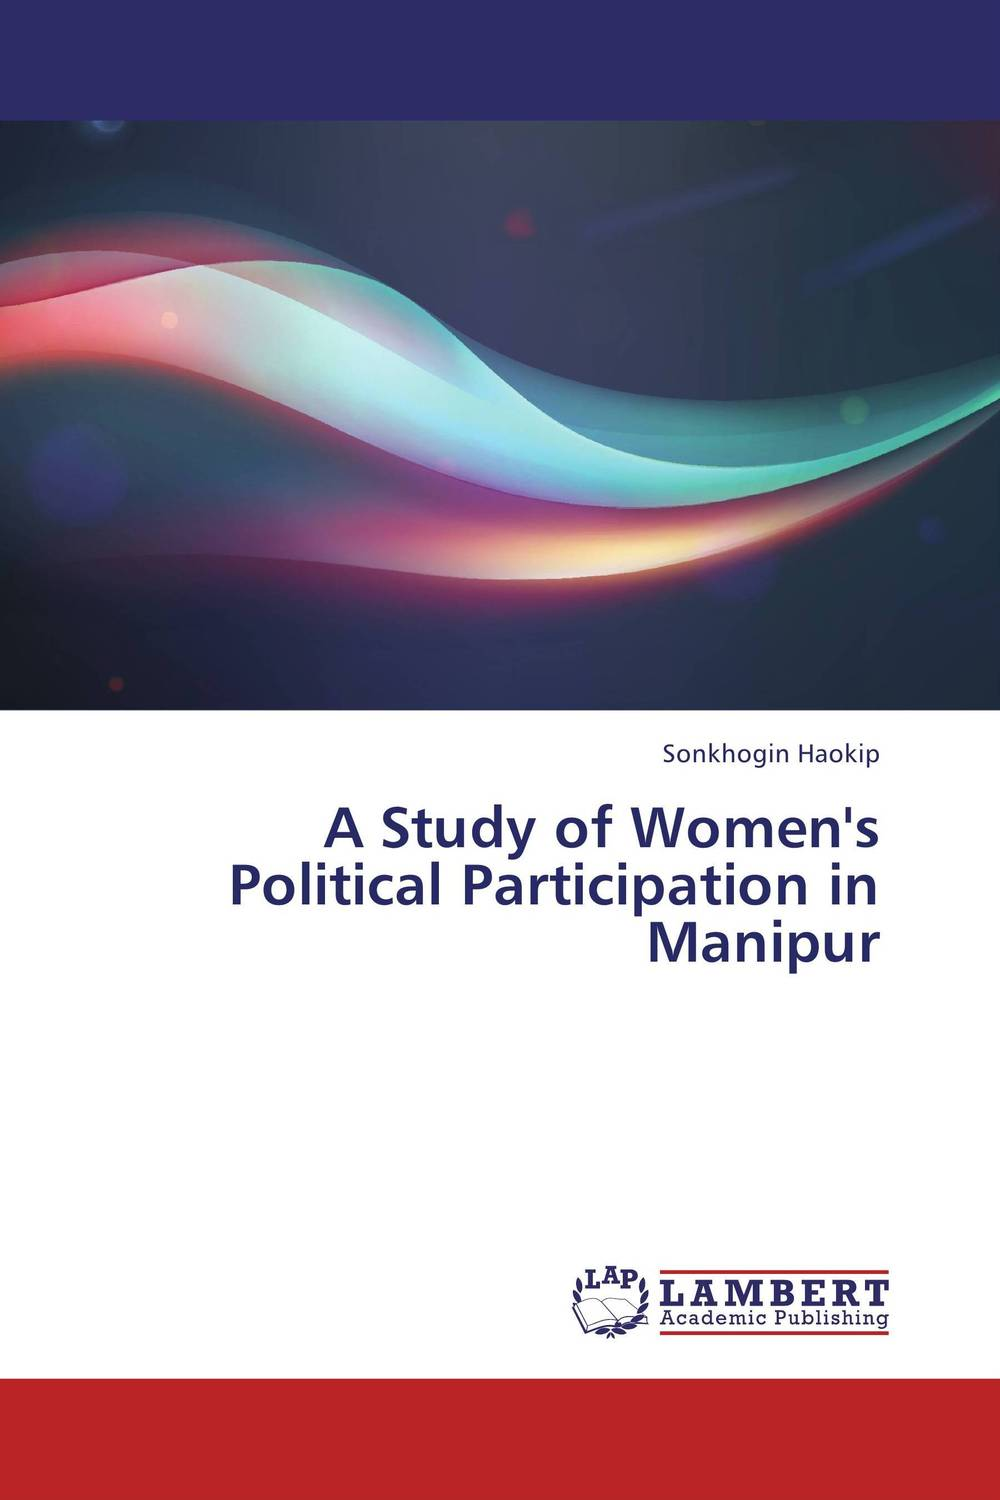 Фото A Study of Women's Political Participation in Manipur a study of women s political participation in manipur